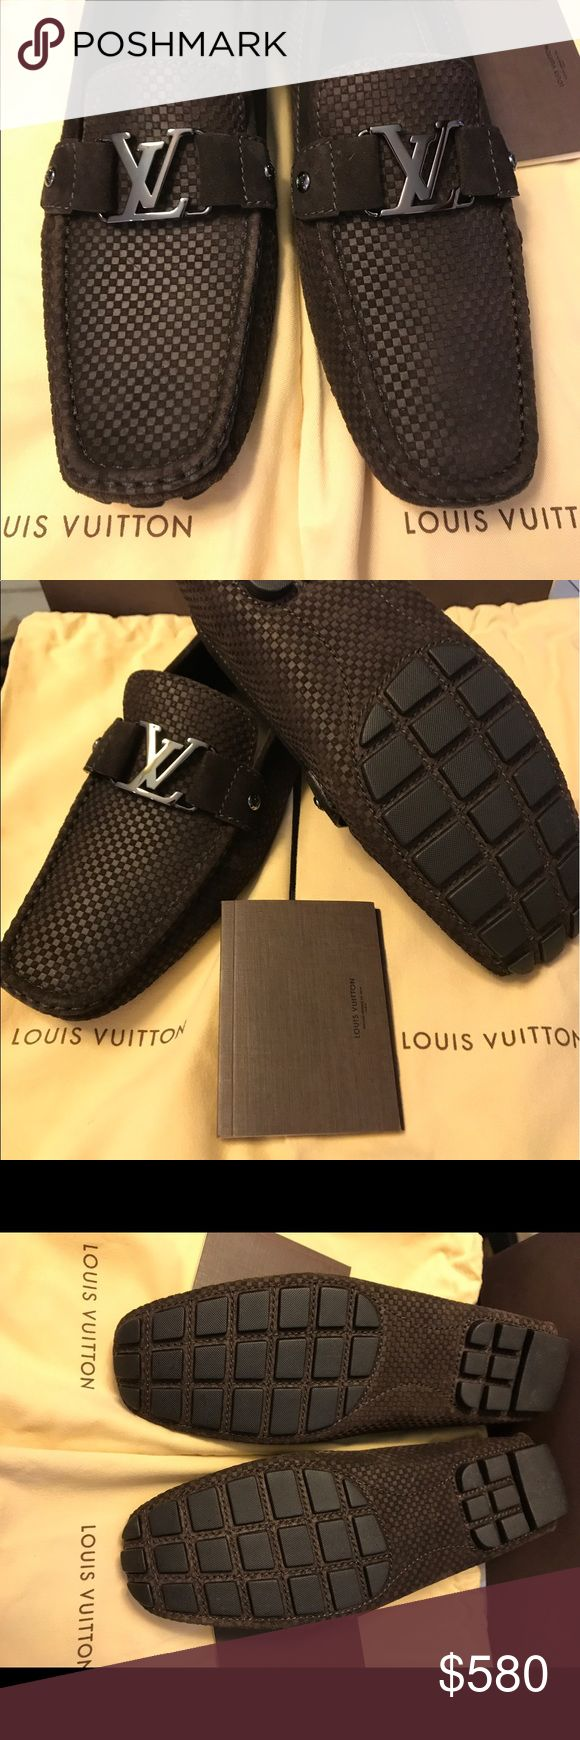 Louis Vuitton Men's Monte Carlo Loafer US size 9 1/2. Good as new. Brown Moccasin construction for exceptional suppleness and lightness. With Iconic LV initials. Hand stitched vamp and upper. With mini Damier embossed suede and supple rubber sole. Louis Vuitton Shoes Loafers & Slip-Ons